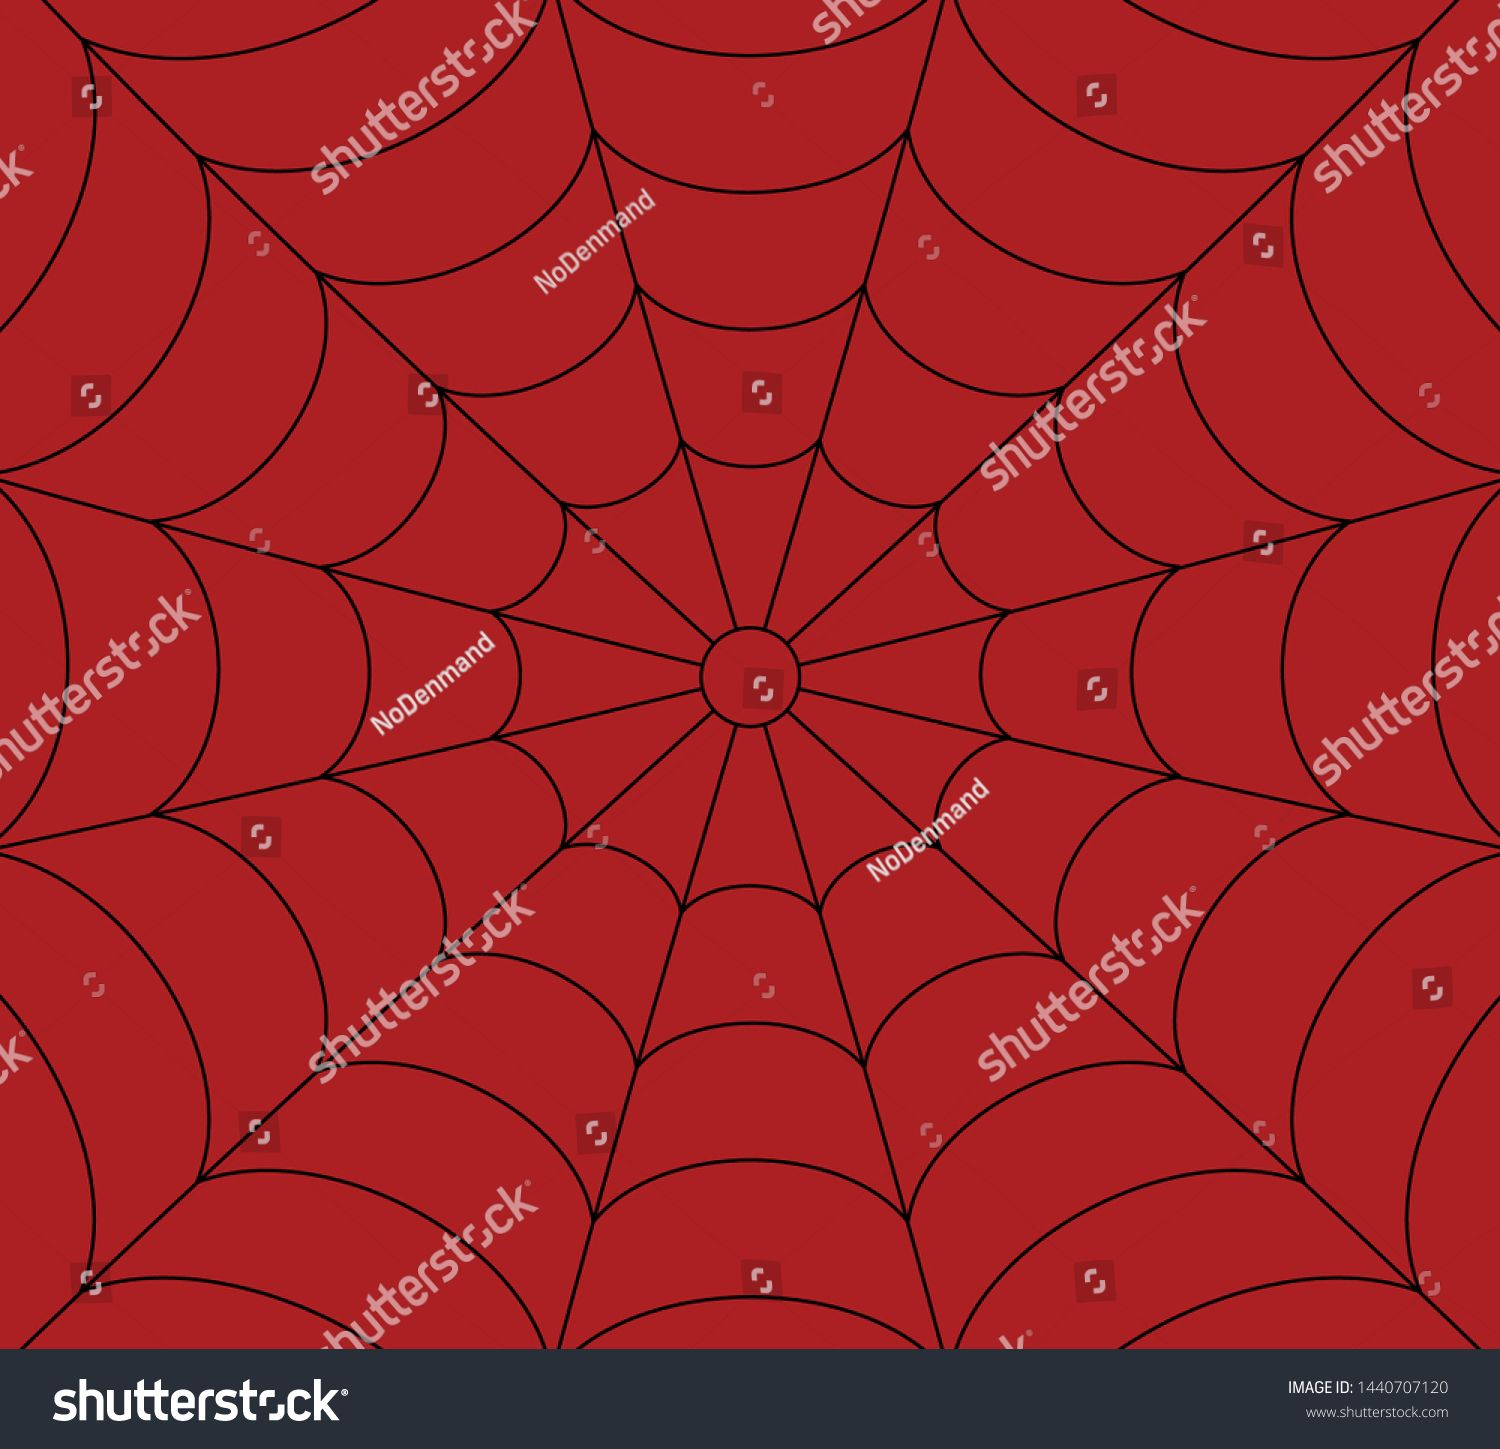 Vector Spider Web Cobweb On Red Background Sponsored Ad Web Spider Vector Background In 2020 Vector Background Red Background Cobweb